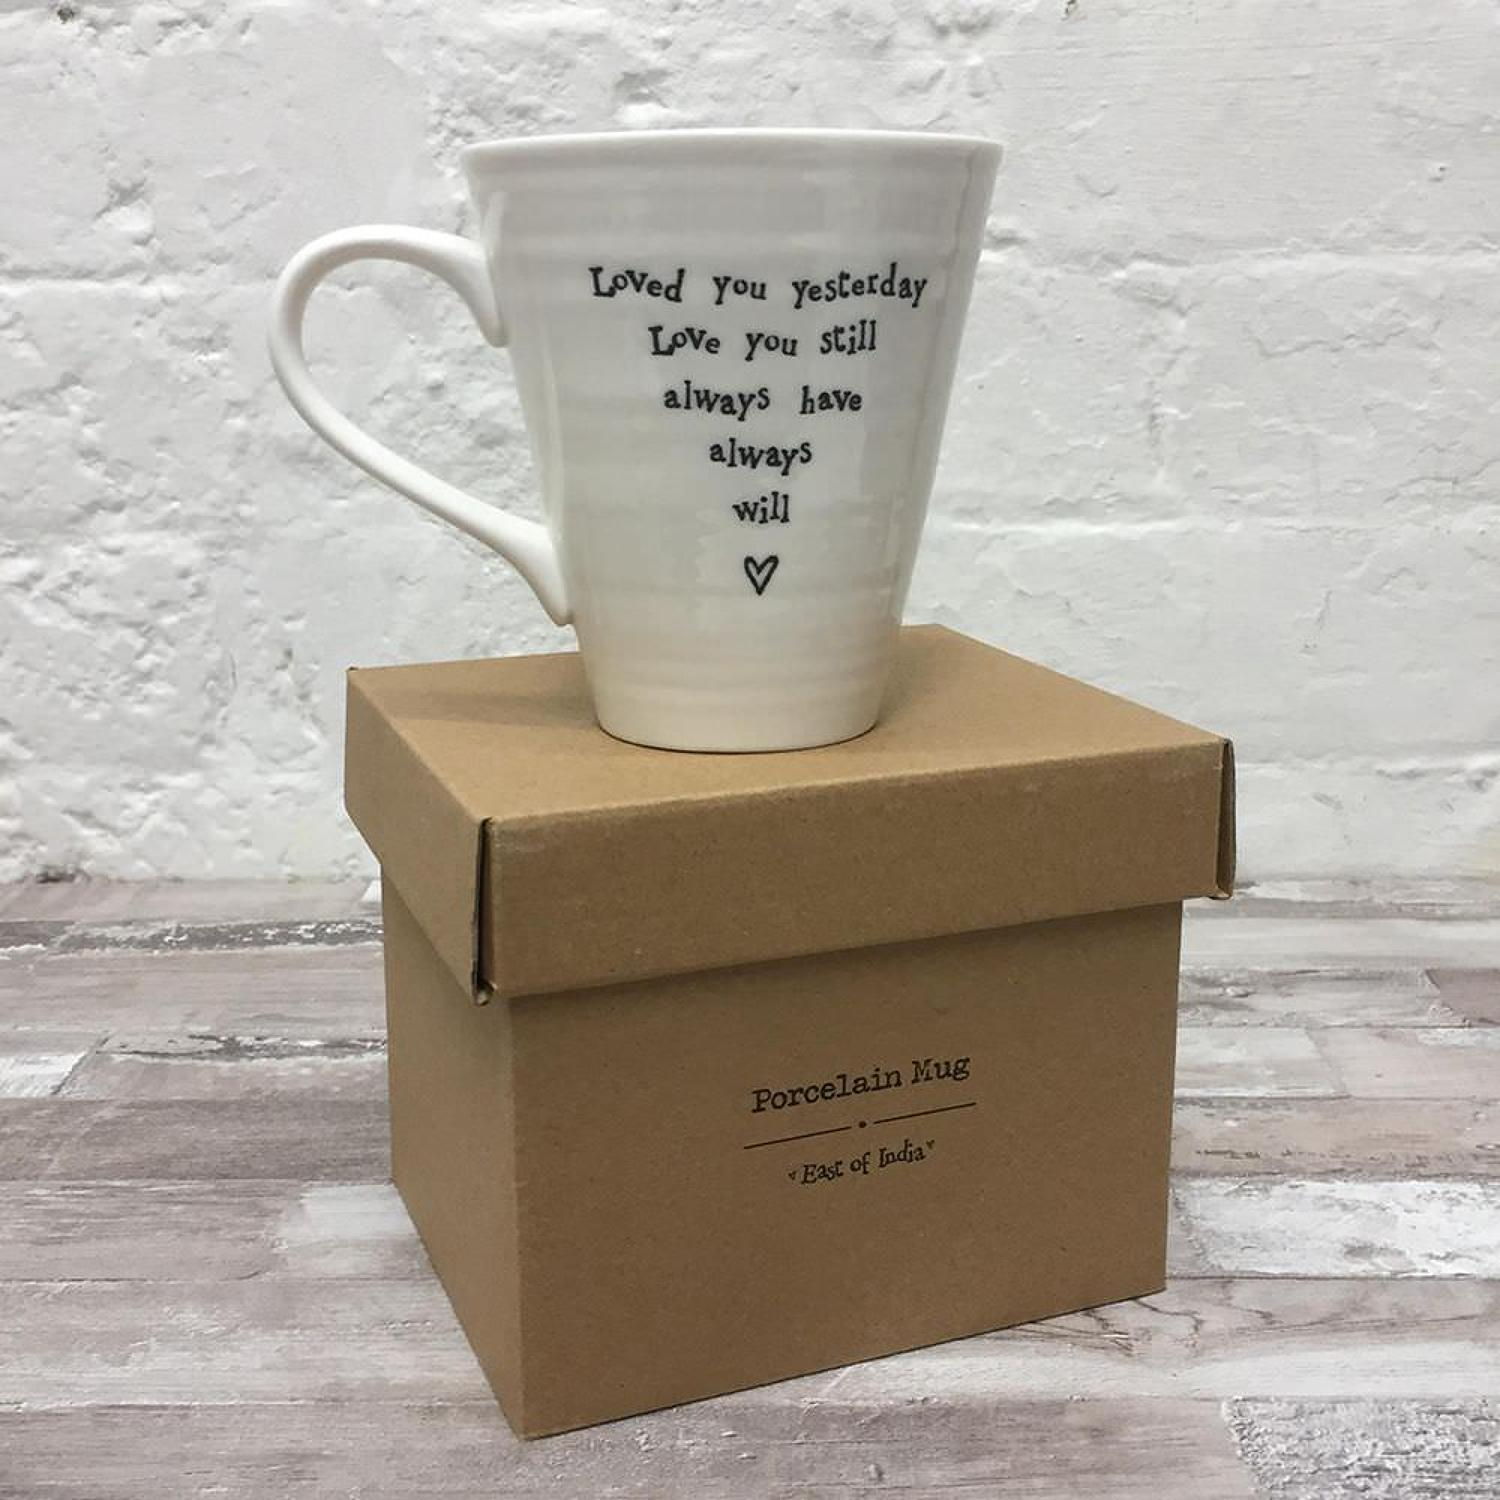 East of India - Boxed porcelain mug - Loved you yesterday , love you s